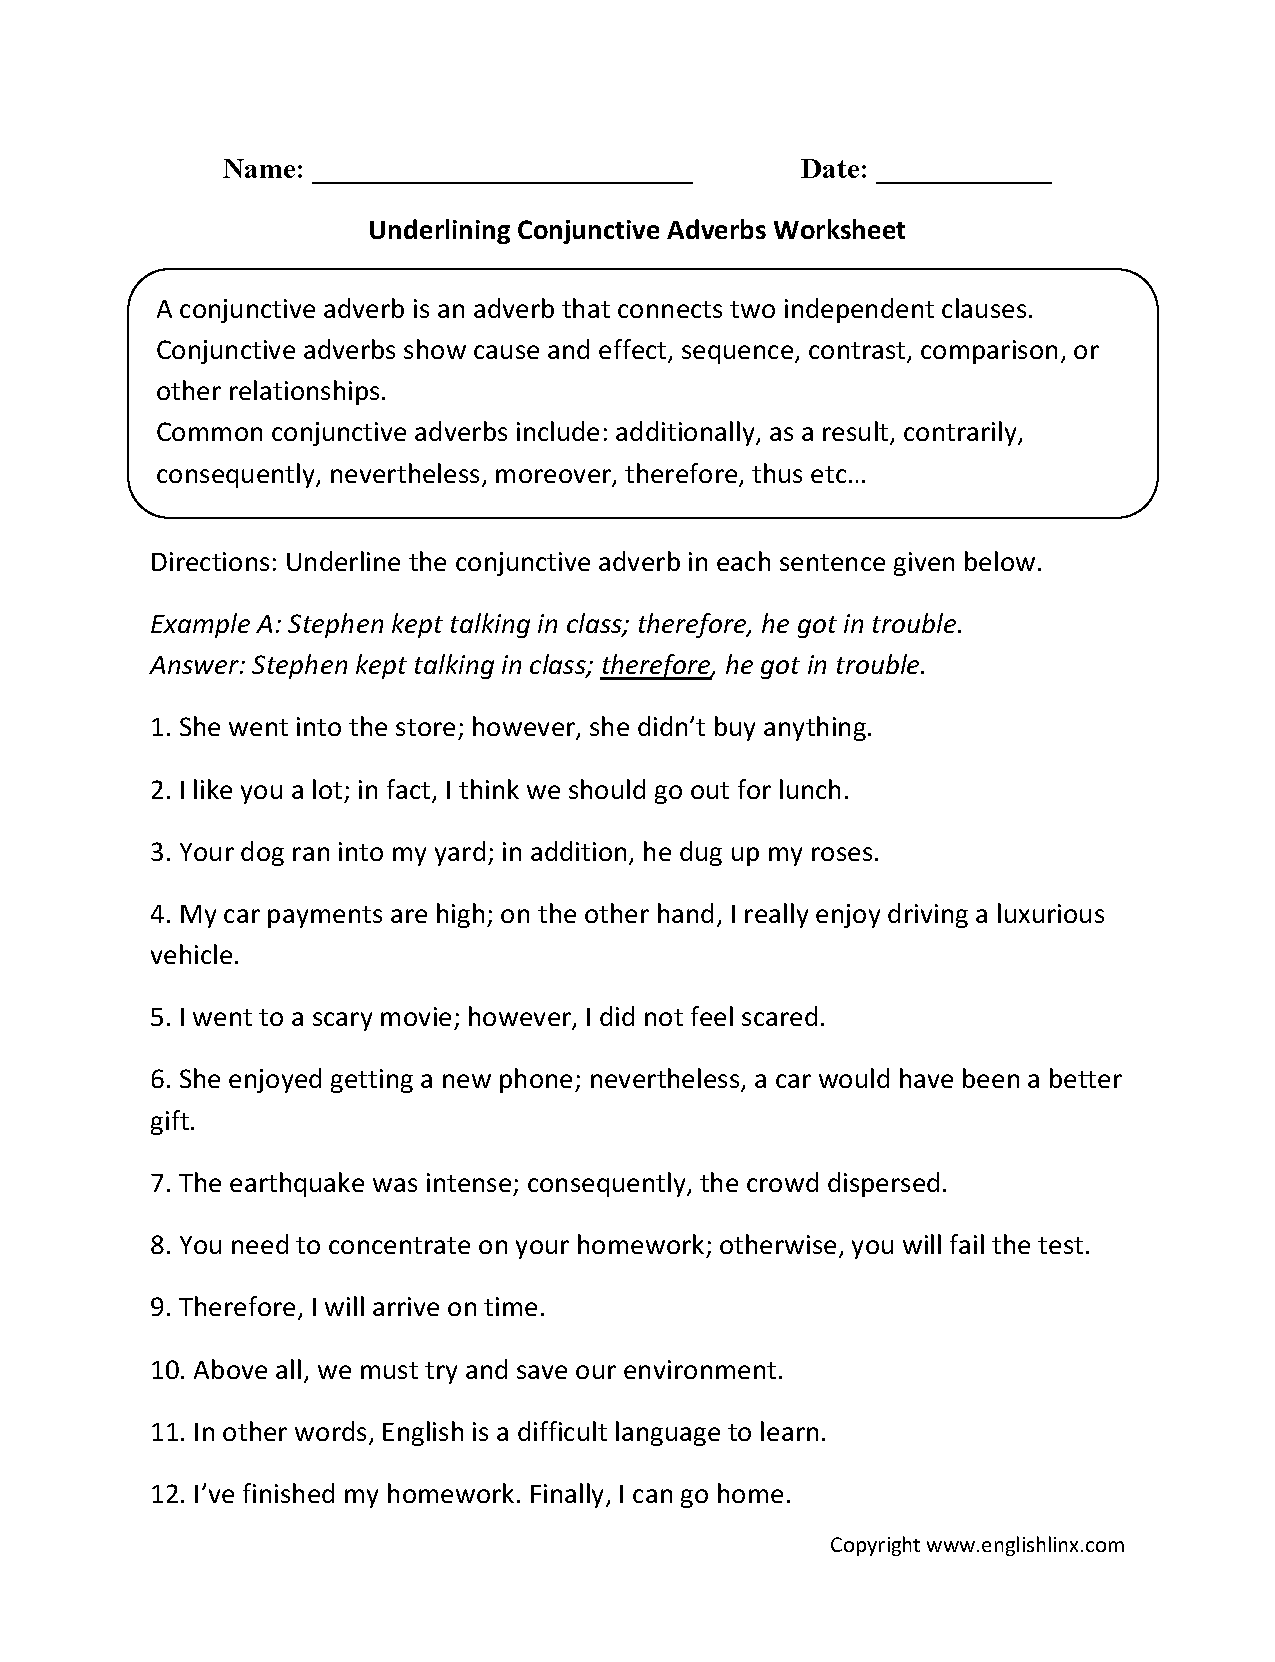 Weirdmailus  Terrific Englishlinxcom  Conjunctions Worksheets With Lovable Worksheet With Cute The Letter X Worksheets Also What Is Worksheet In Ms Excel In Addition Worksheets For Quadratic Equations And Hindi Worksheets For Kindergarten As Well As Hyperbola Worksheet Additionally Free Math Coloring Worksheets From Englishlinxcom With Weirdmailus  Lovable Englishlinxcom  Conjunctions Worksheets With Cute Worksheet And Terrific The Letter X Worksheets Also What Is Worksheet In Ms Excel In Addition Worksheets For Quadratic Equations From Englishlinxcom